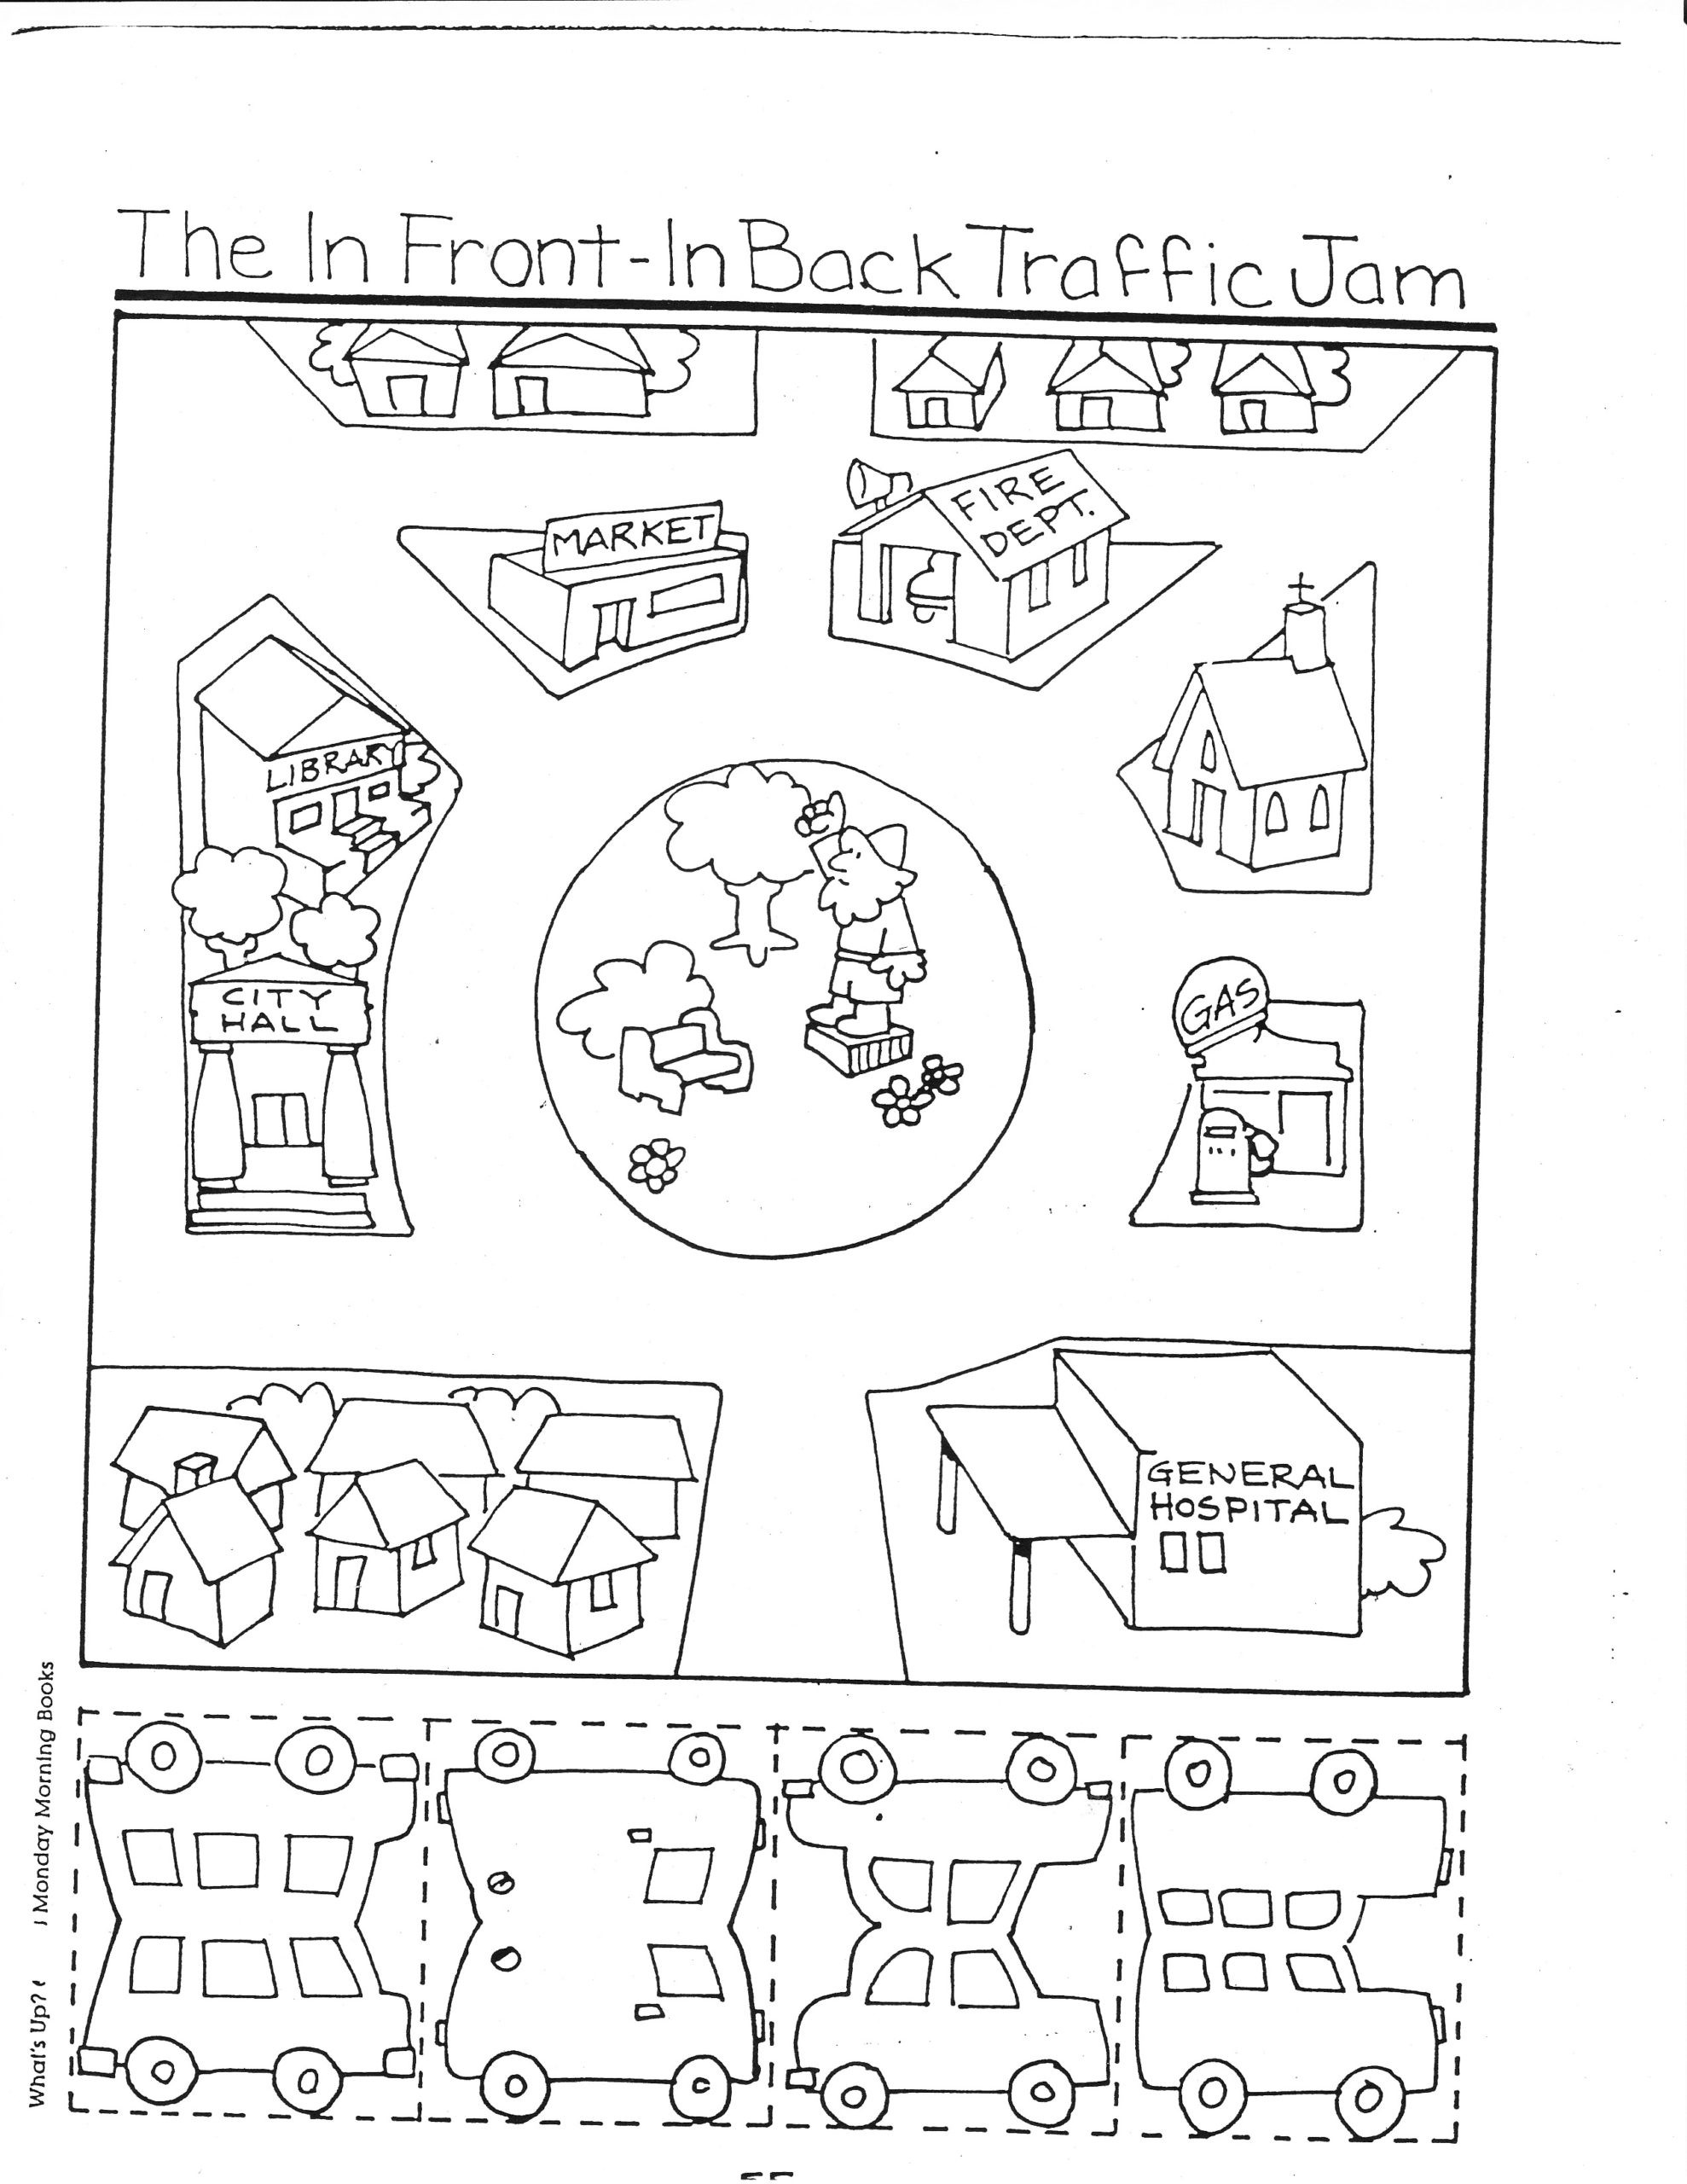 Drawing Conclusions Worksheets 2nd Grade Printable Drawing Activities at Getdrawings Free Conclusions